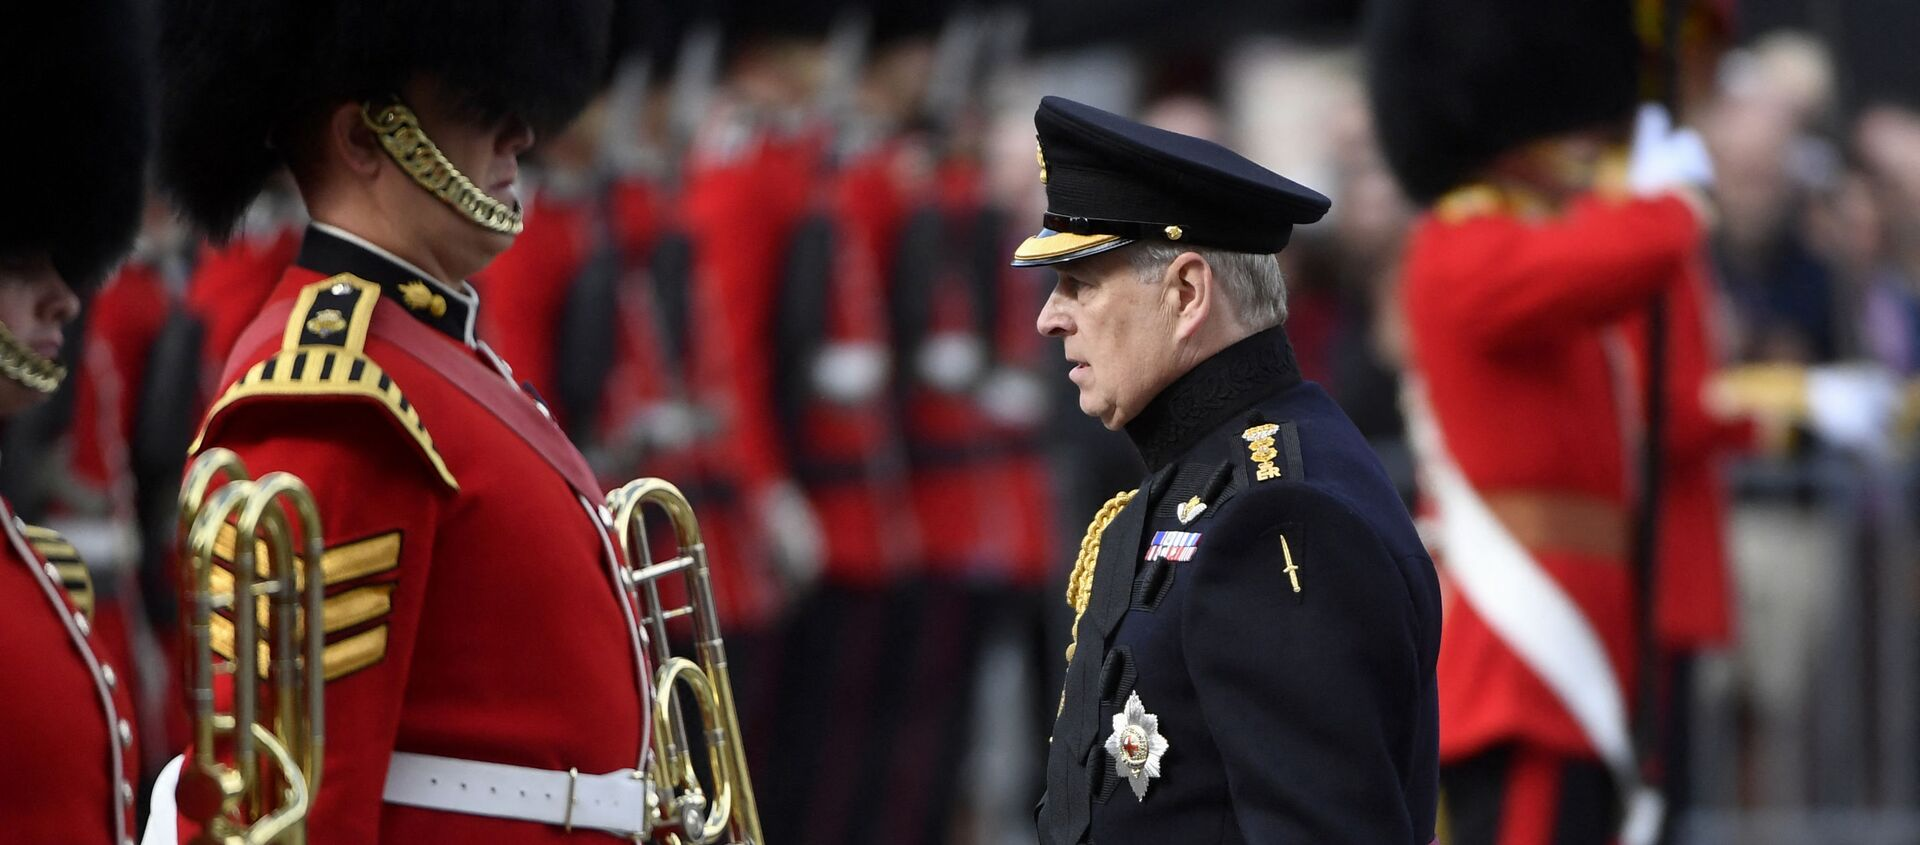 Britain's Prince Andrew, Duke of York, attends a ceremony commemorating the 75th anniversary of the liberation of Bruges on September 7, 2019 in Bruges - Sputnik International, 1920, 15.08.2021